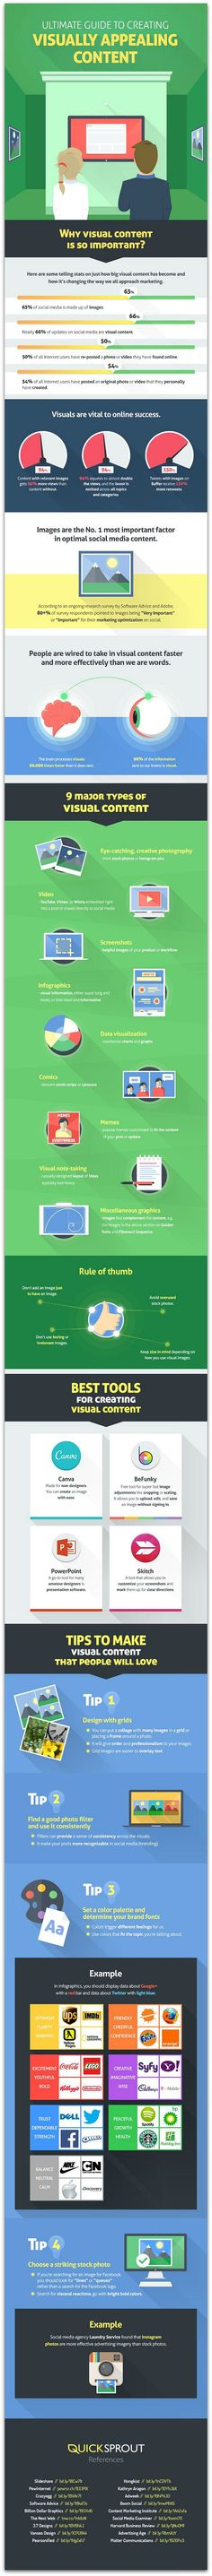 #Infographic: A beginner's guide to crafting visual content